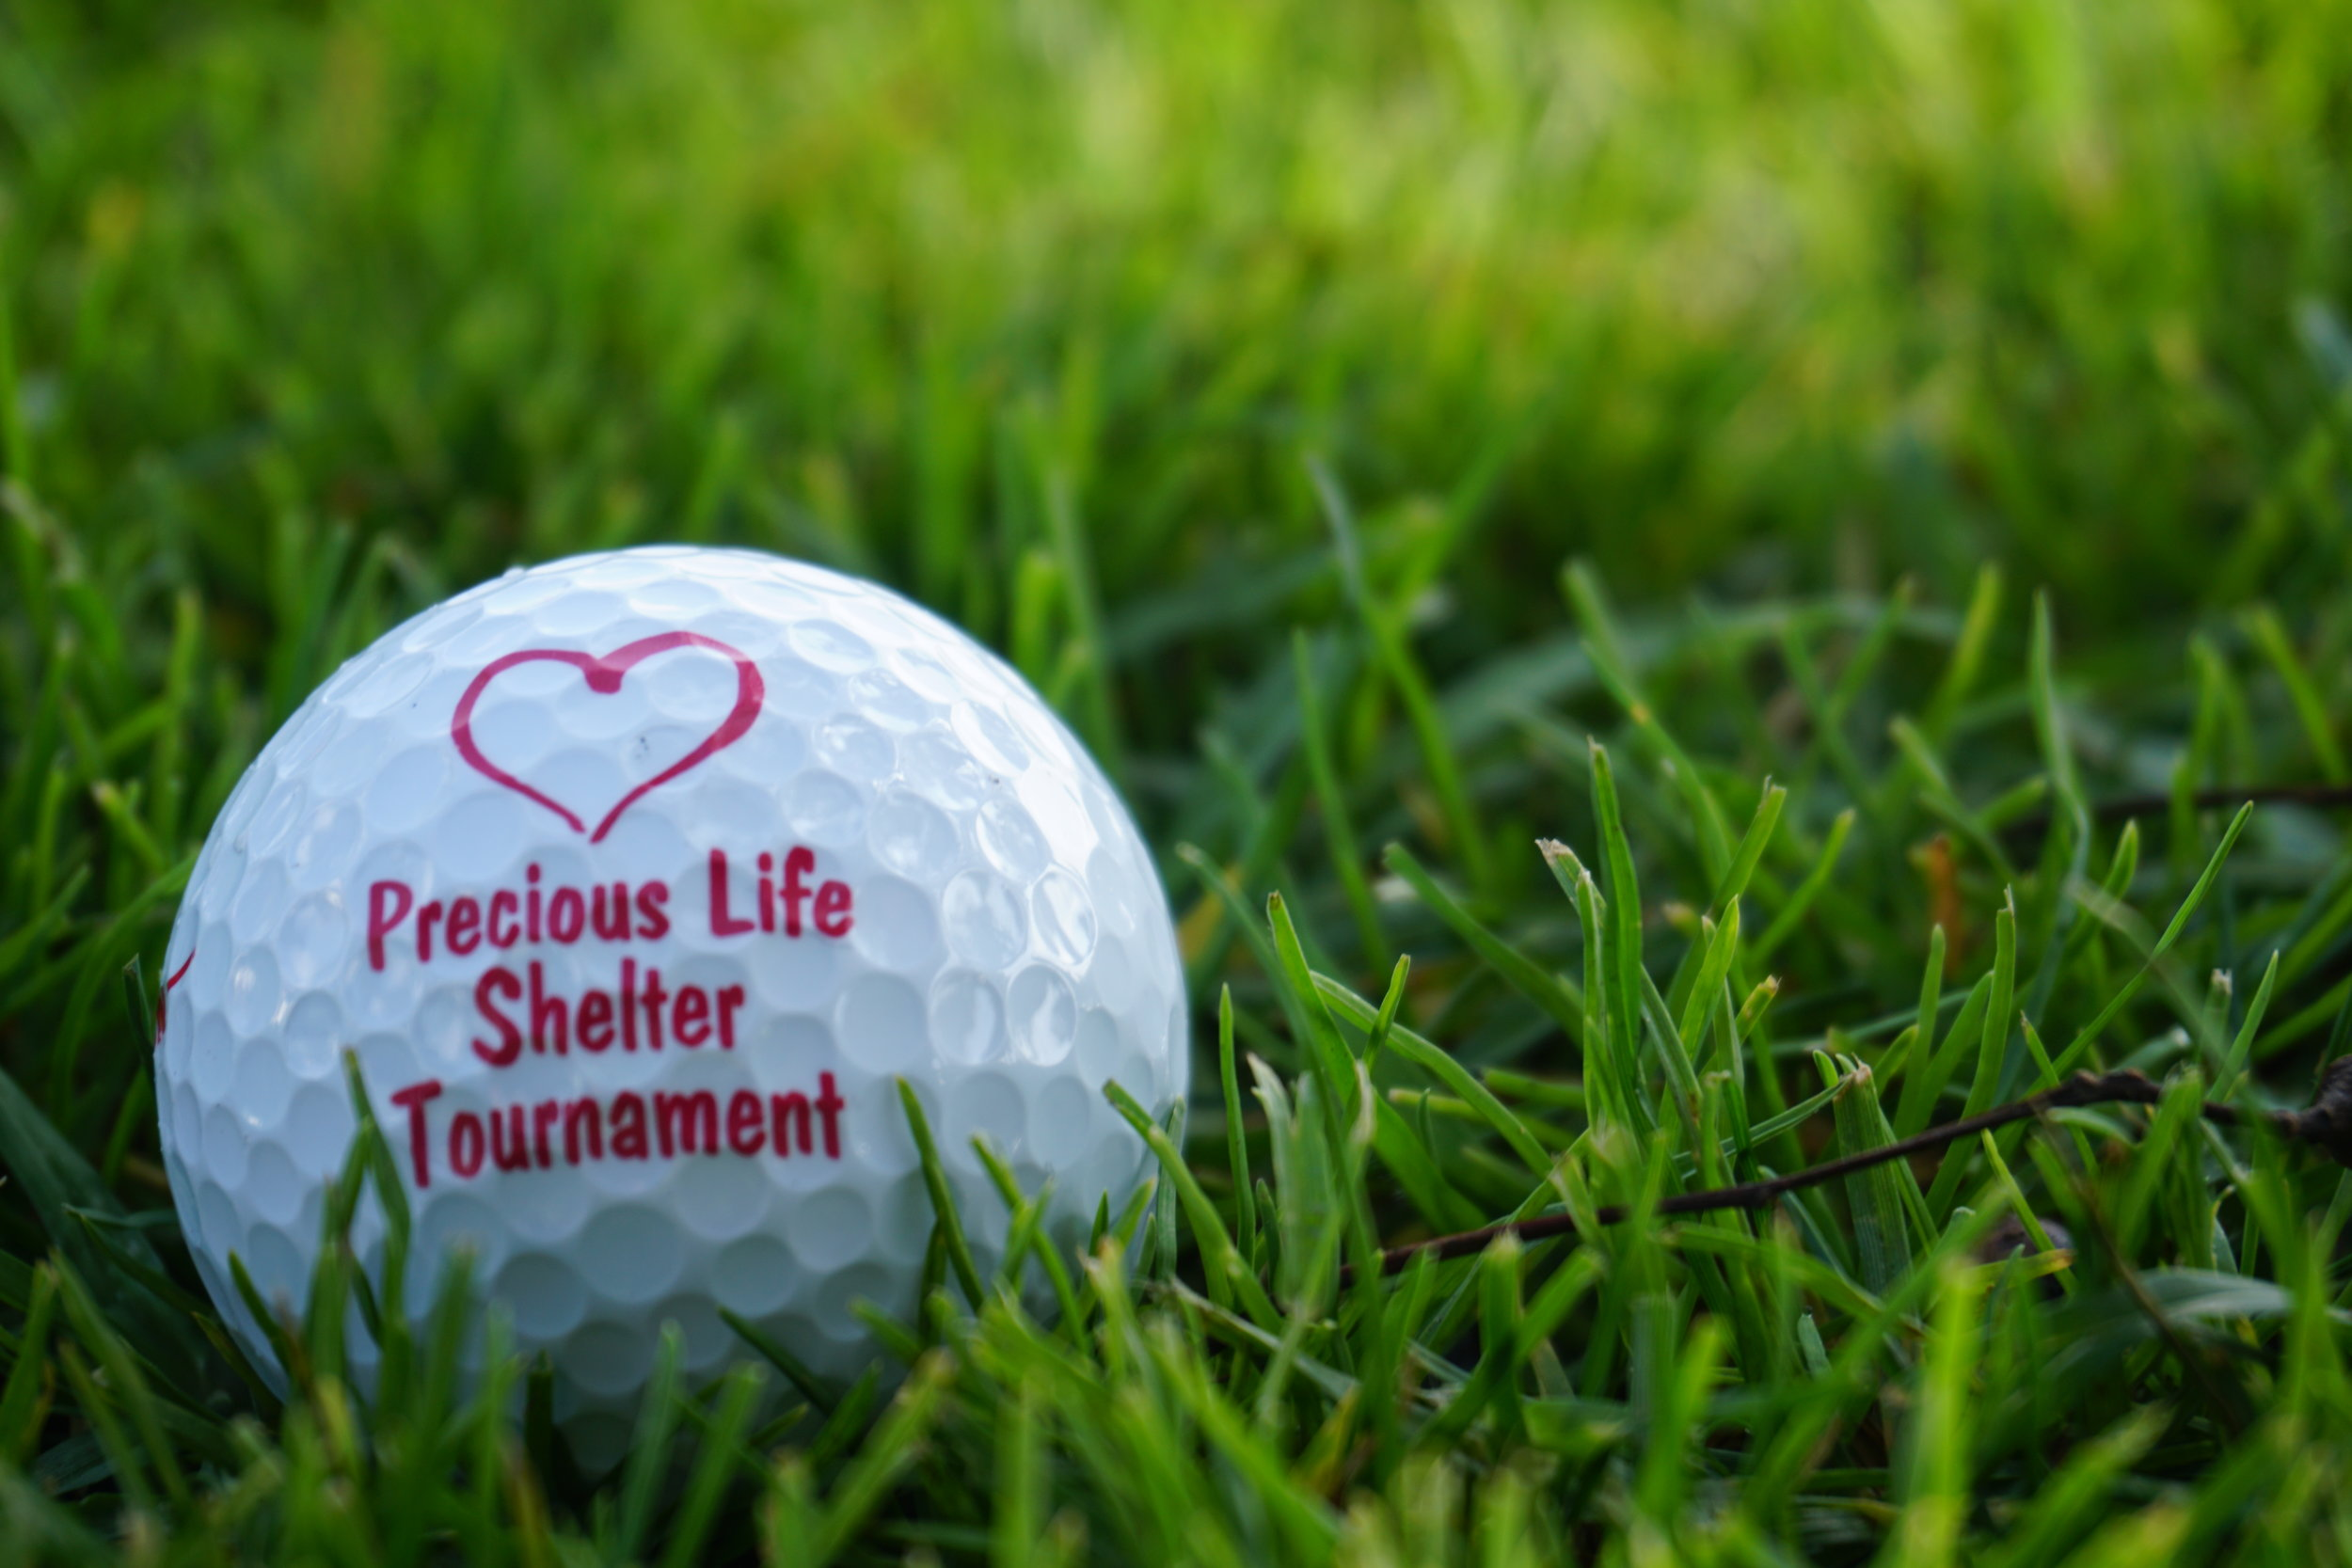 2017 Tee Off For The Heart - Click here to view more photos